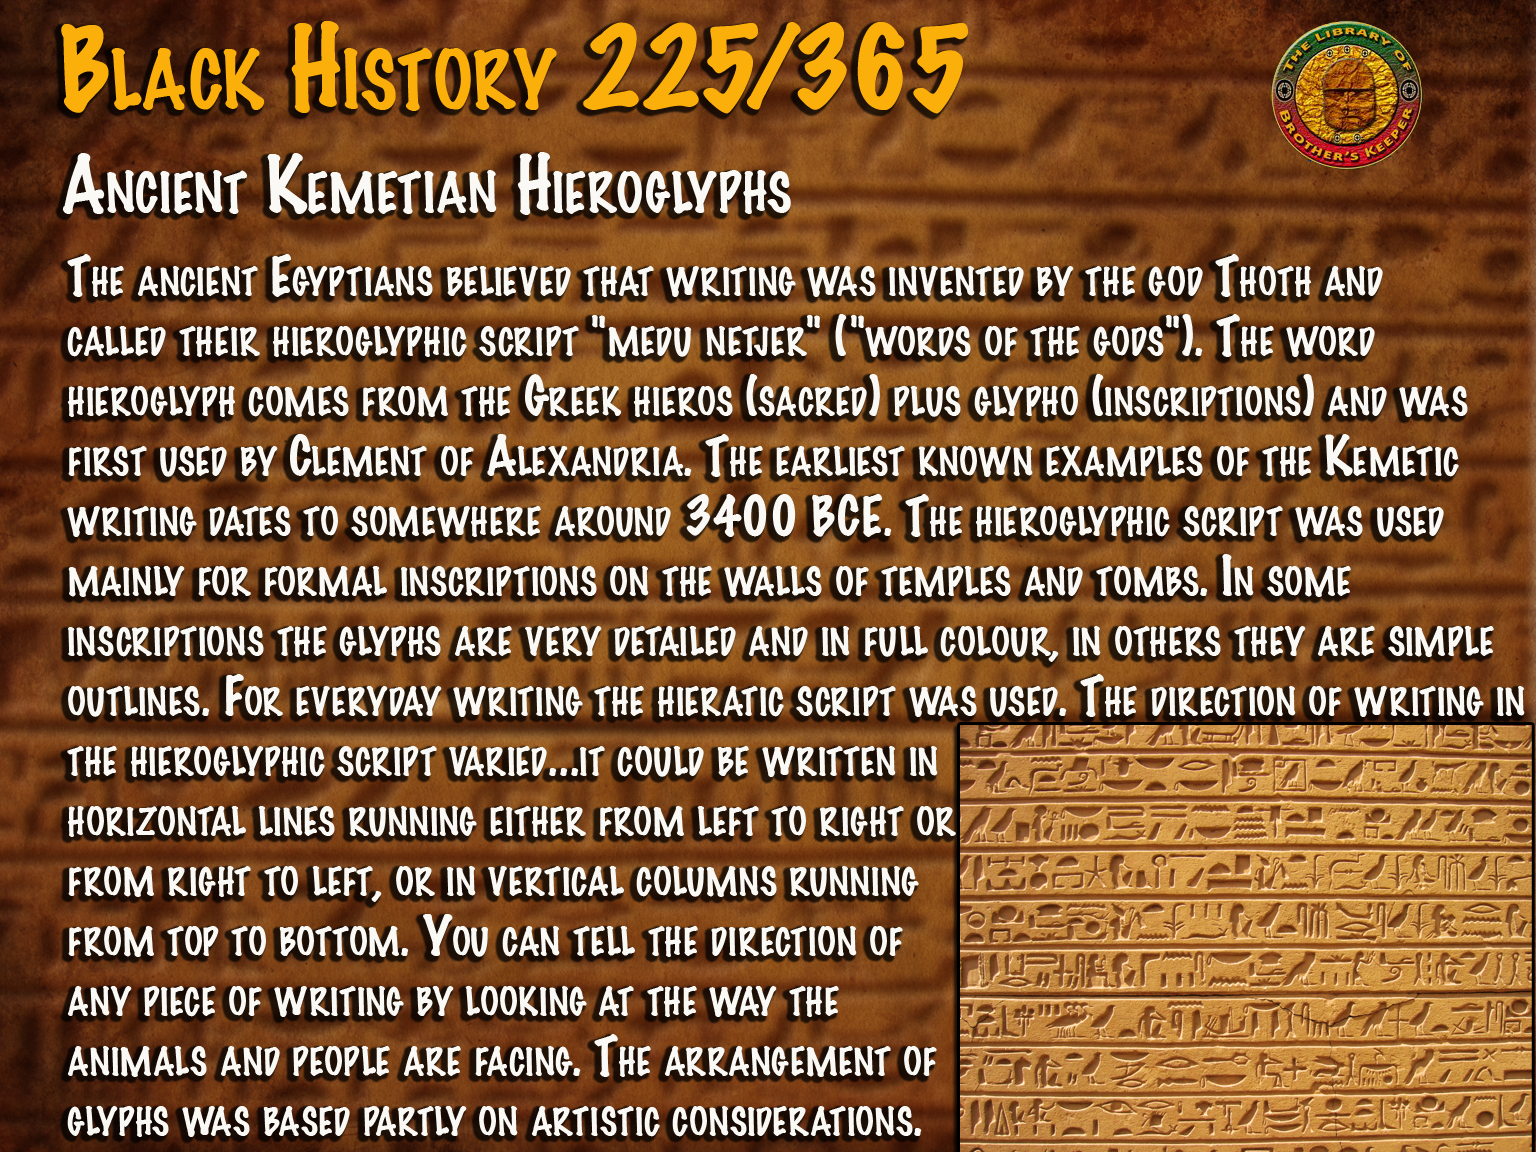 Ancient Kemetic Hieroglyphs